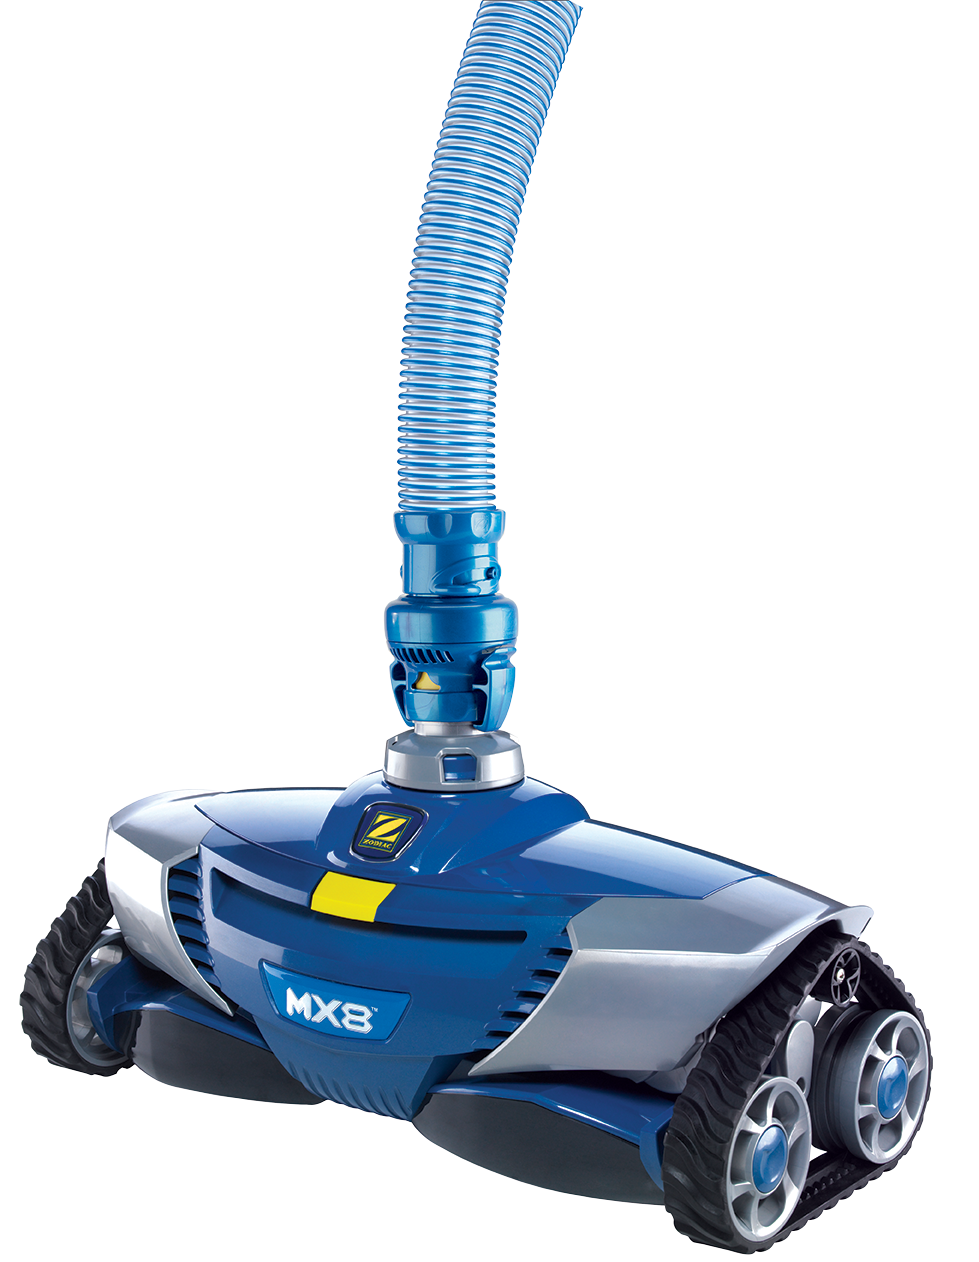 Zodiac Mx8 Suction Pool Cleaner Zodiac Pool Systems